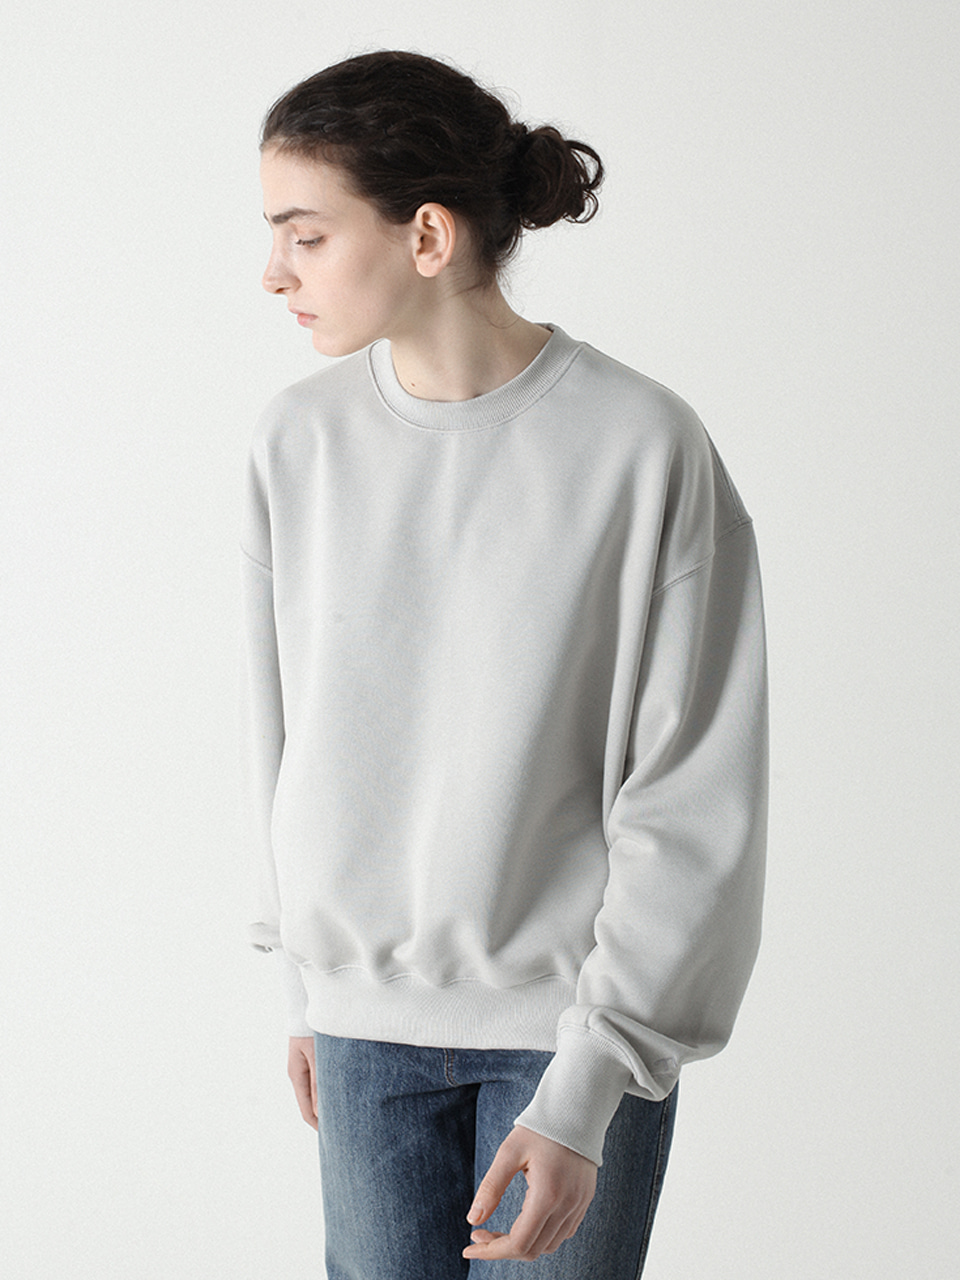 Feminine Cutting Crewneck Light grey